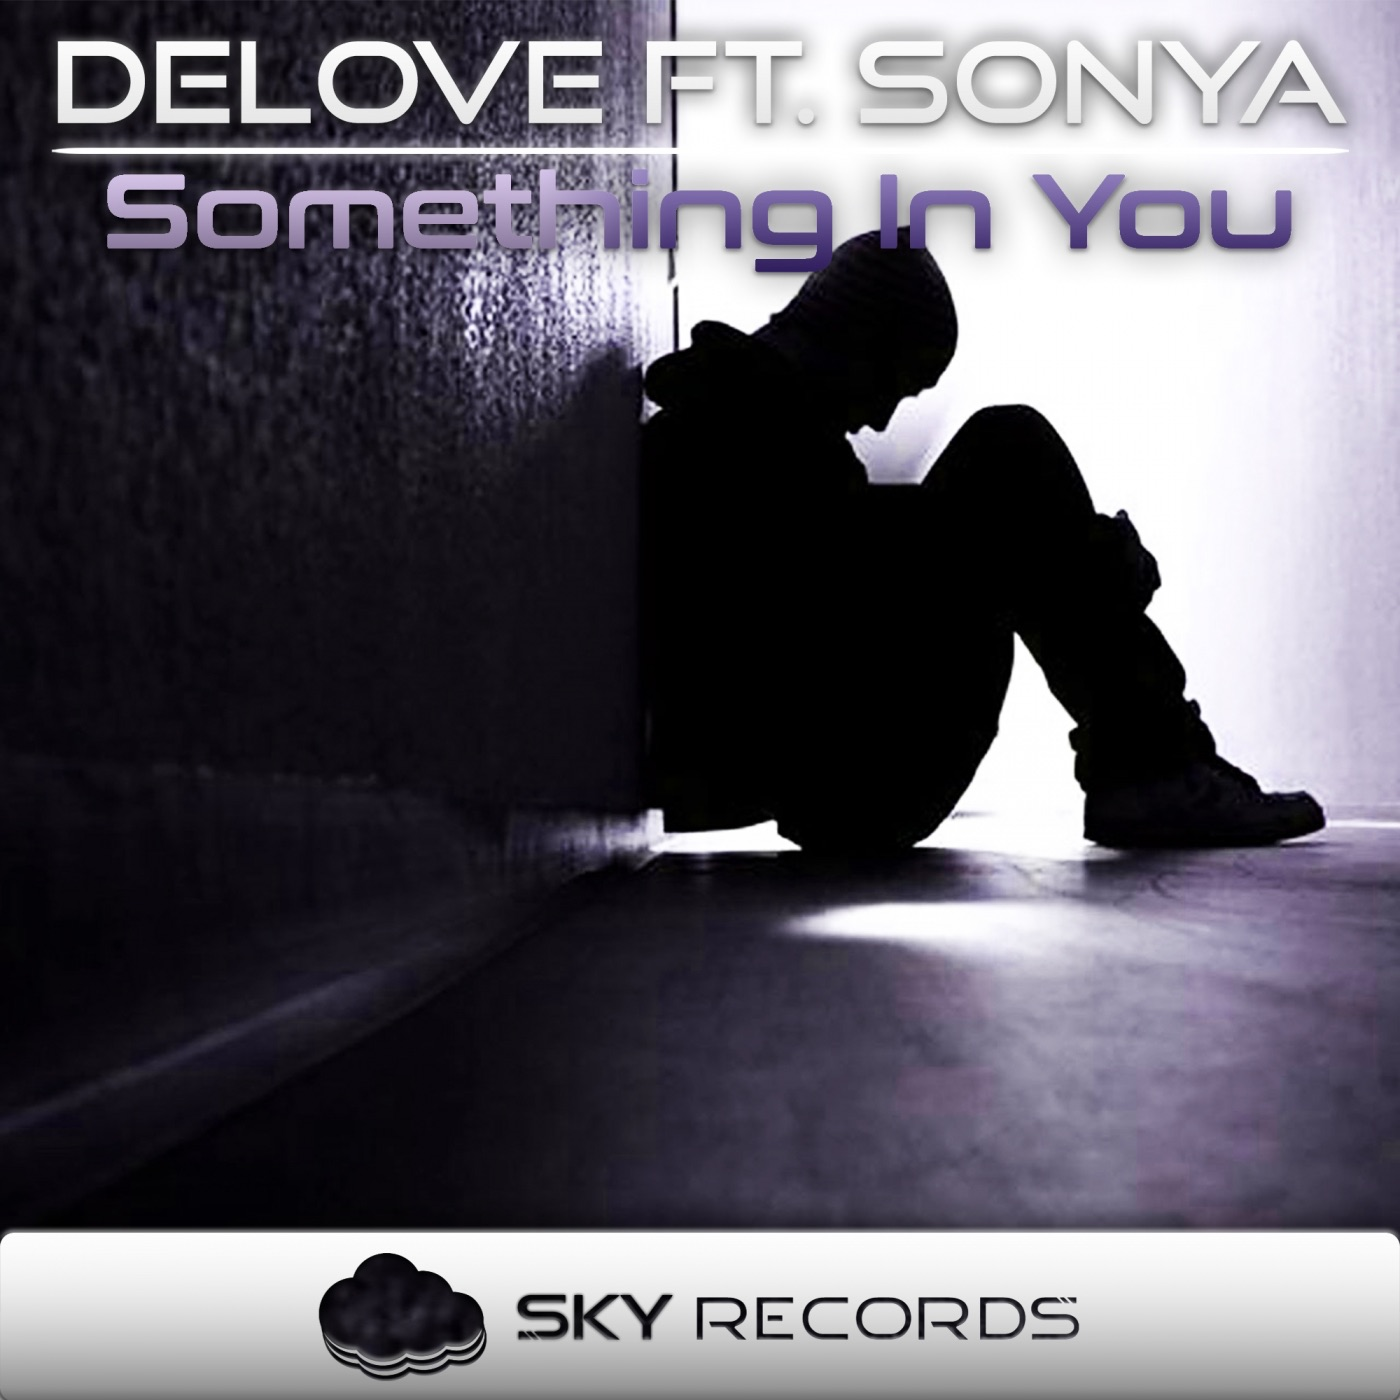 Something in You (feat. Sonya) - Single